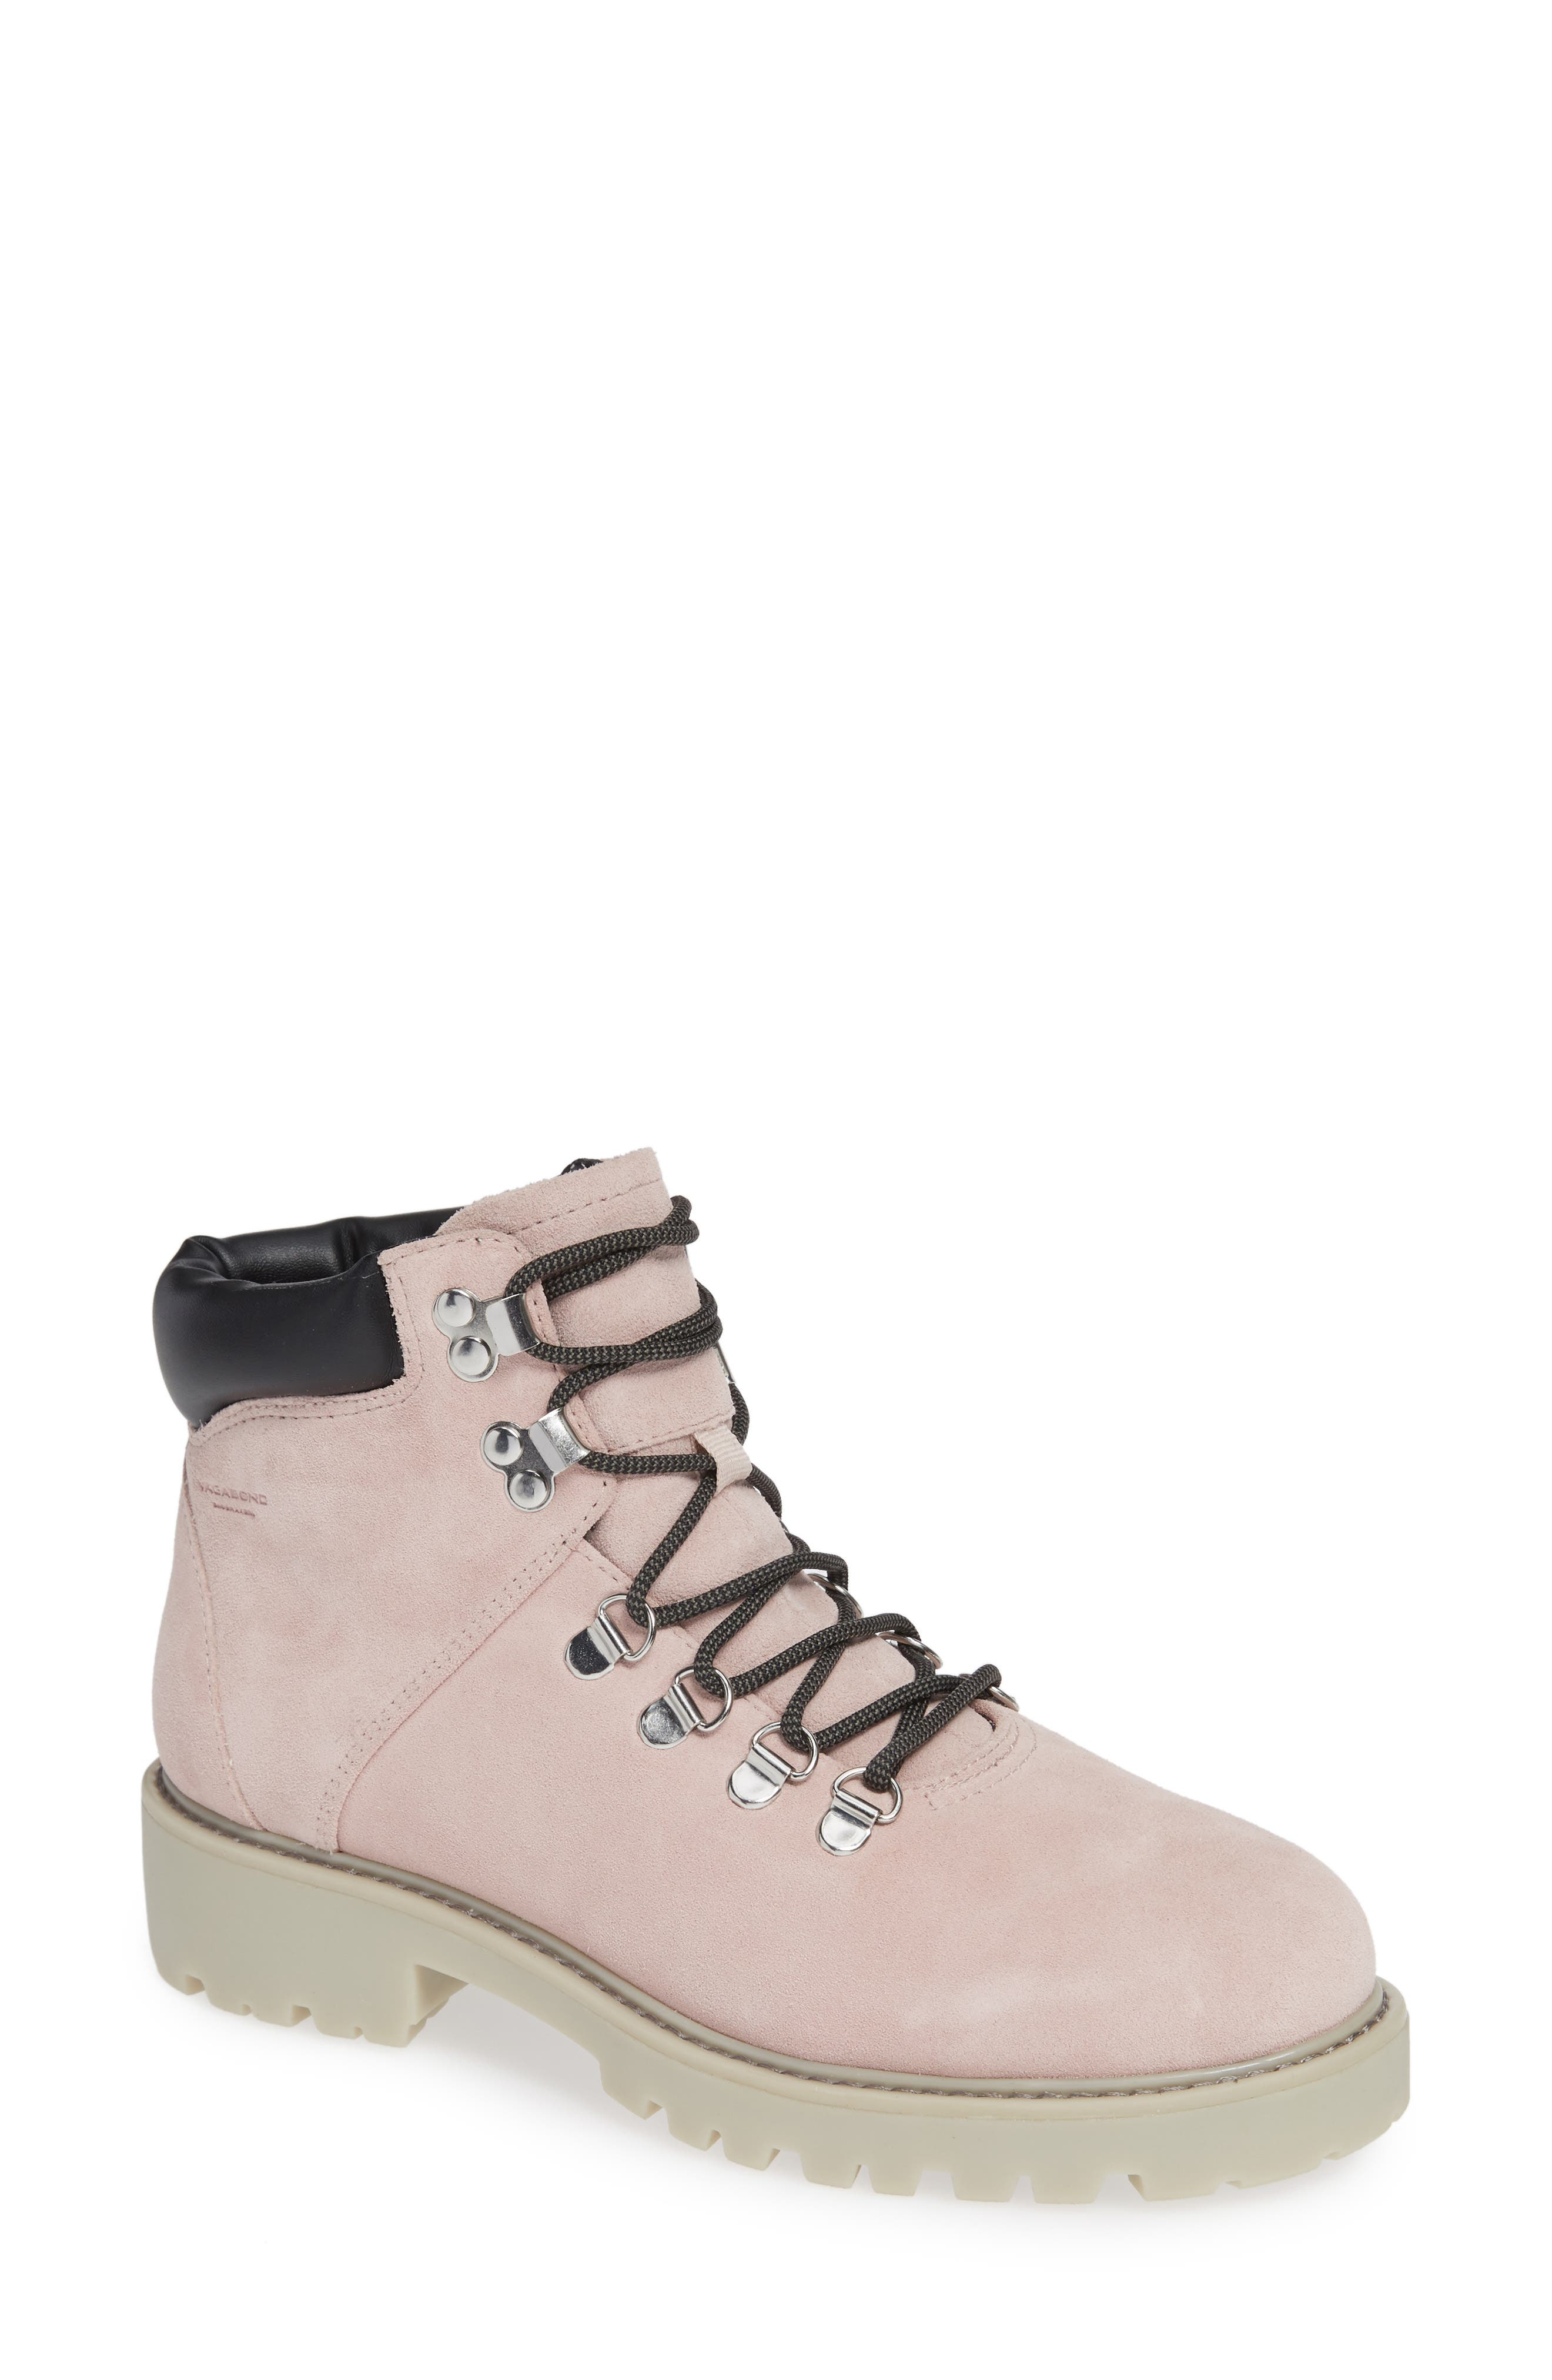 VAGABOND,                             Shoemakers Kenova Boot,                             Main thumbnail 1, color,                             MILKSHAKE SUEDE